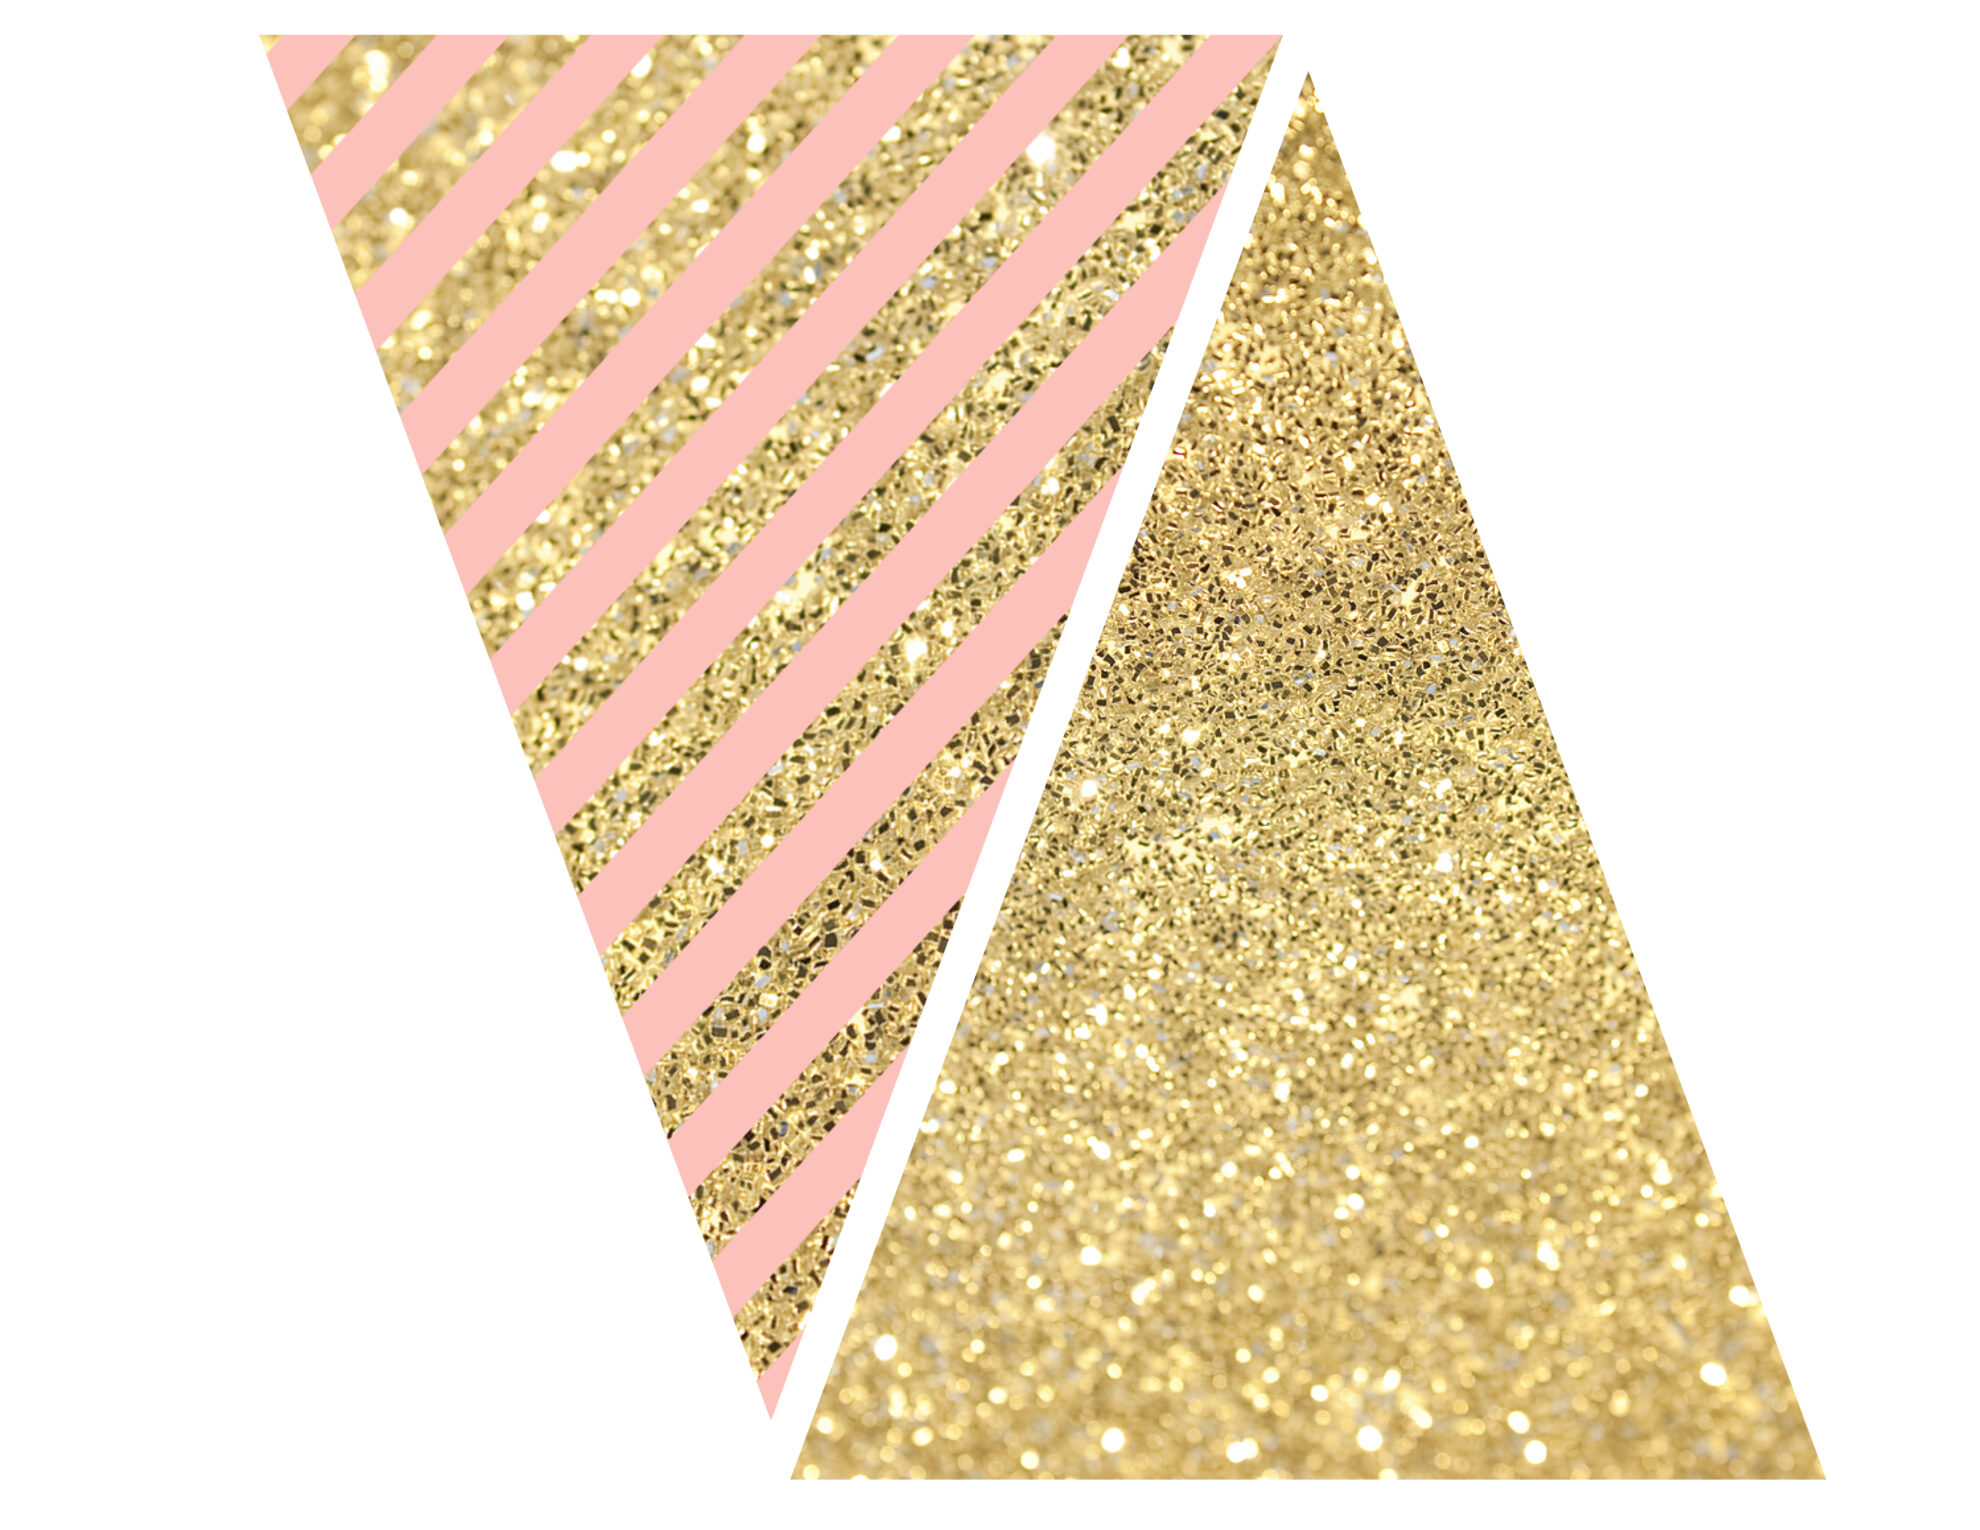 depositphotos illustration frame stock vector glitter ravishing gold background with circle pink on